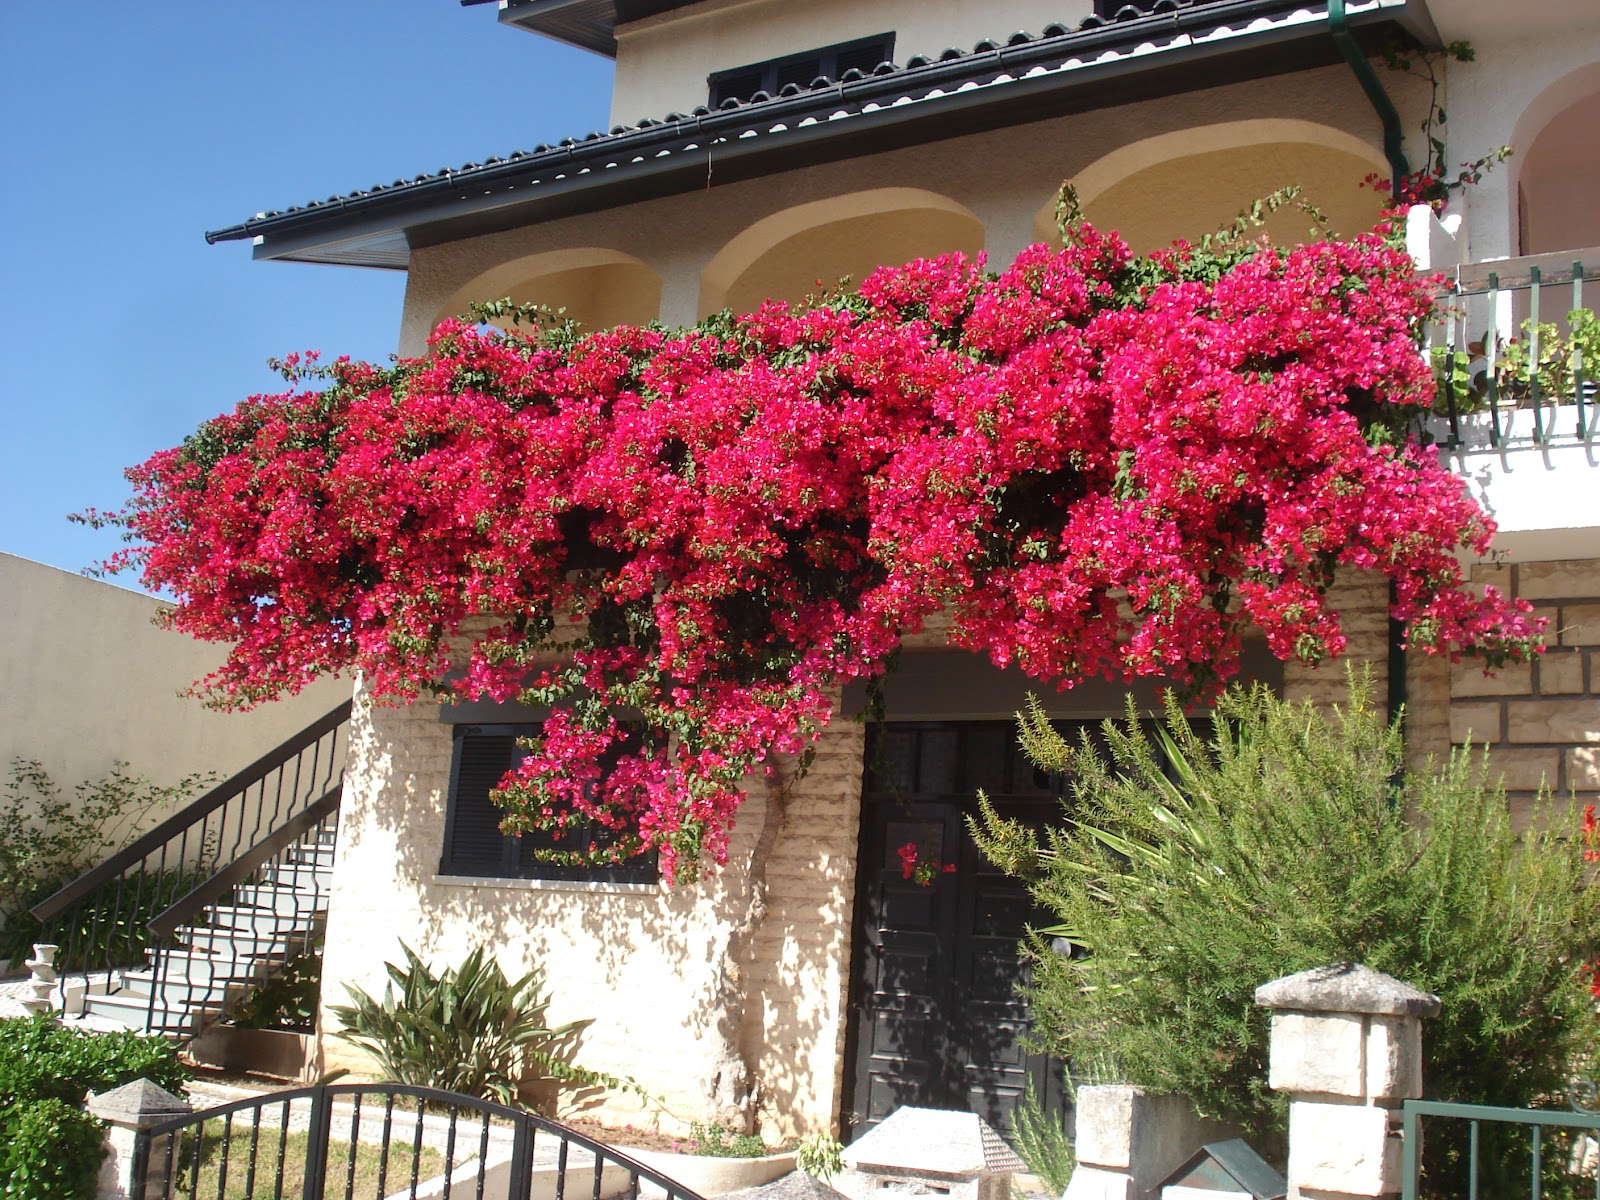 Helen and Peter in Portugal: oh what a lovely bougainvillea